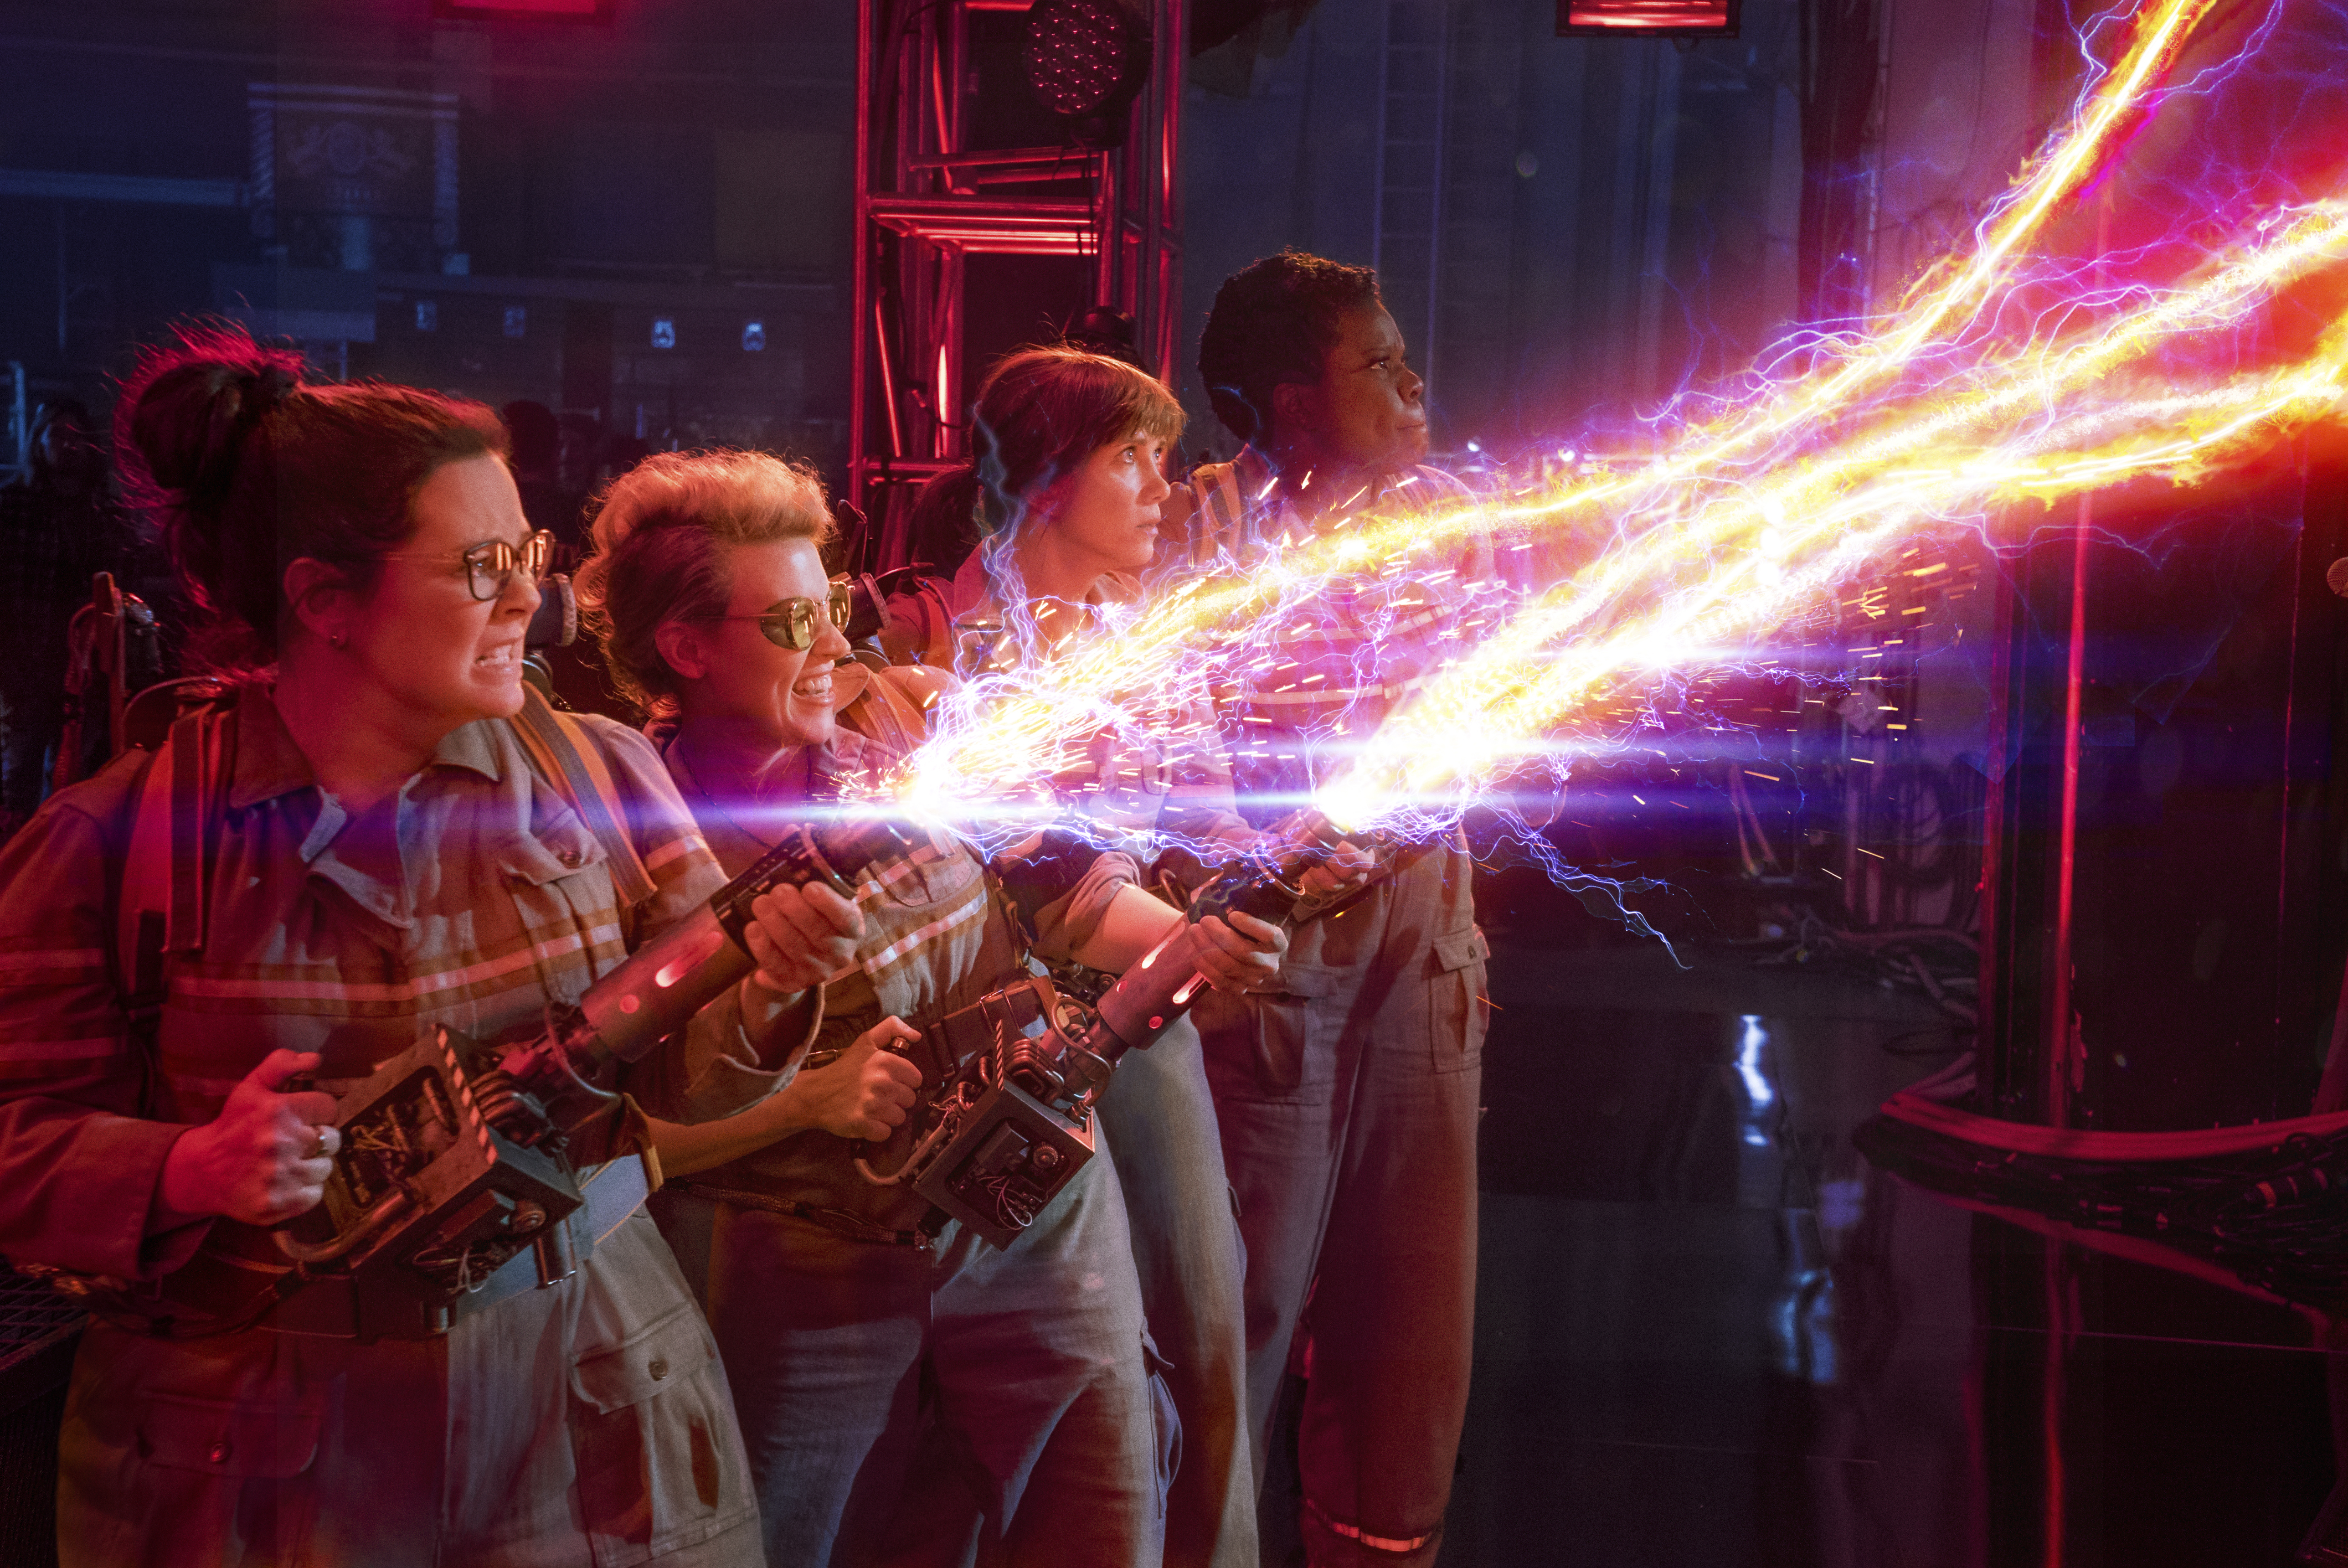 ghostbusters-dom-DF-05651_rv11_rgb-copy